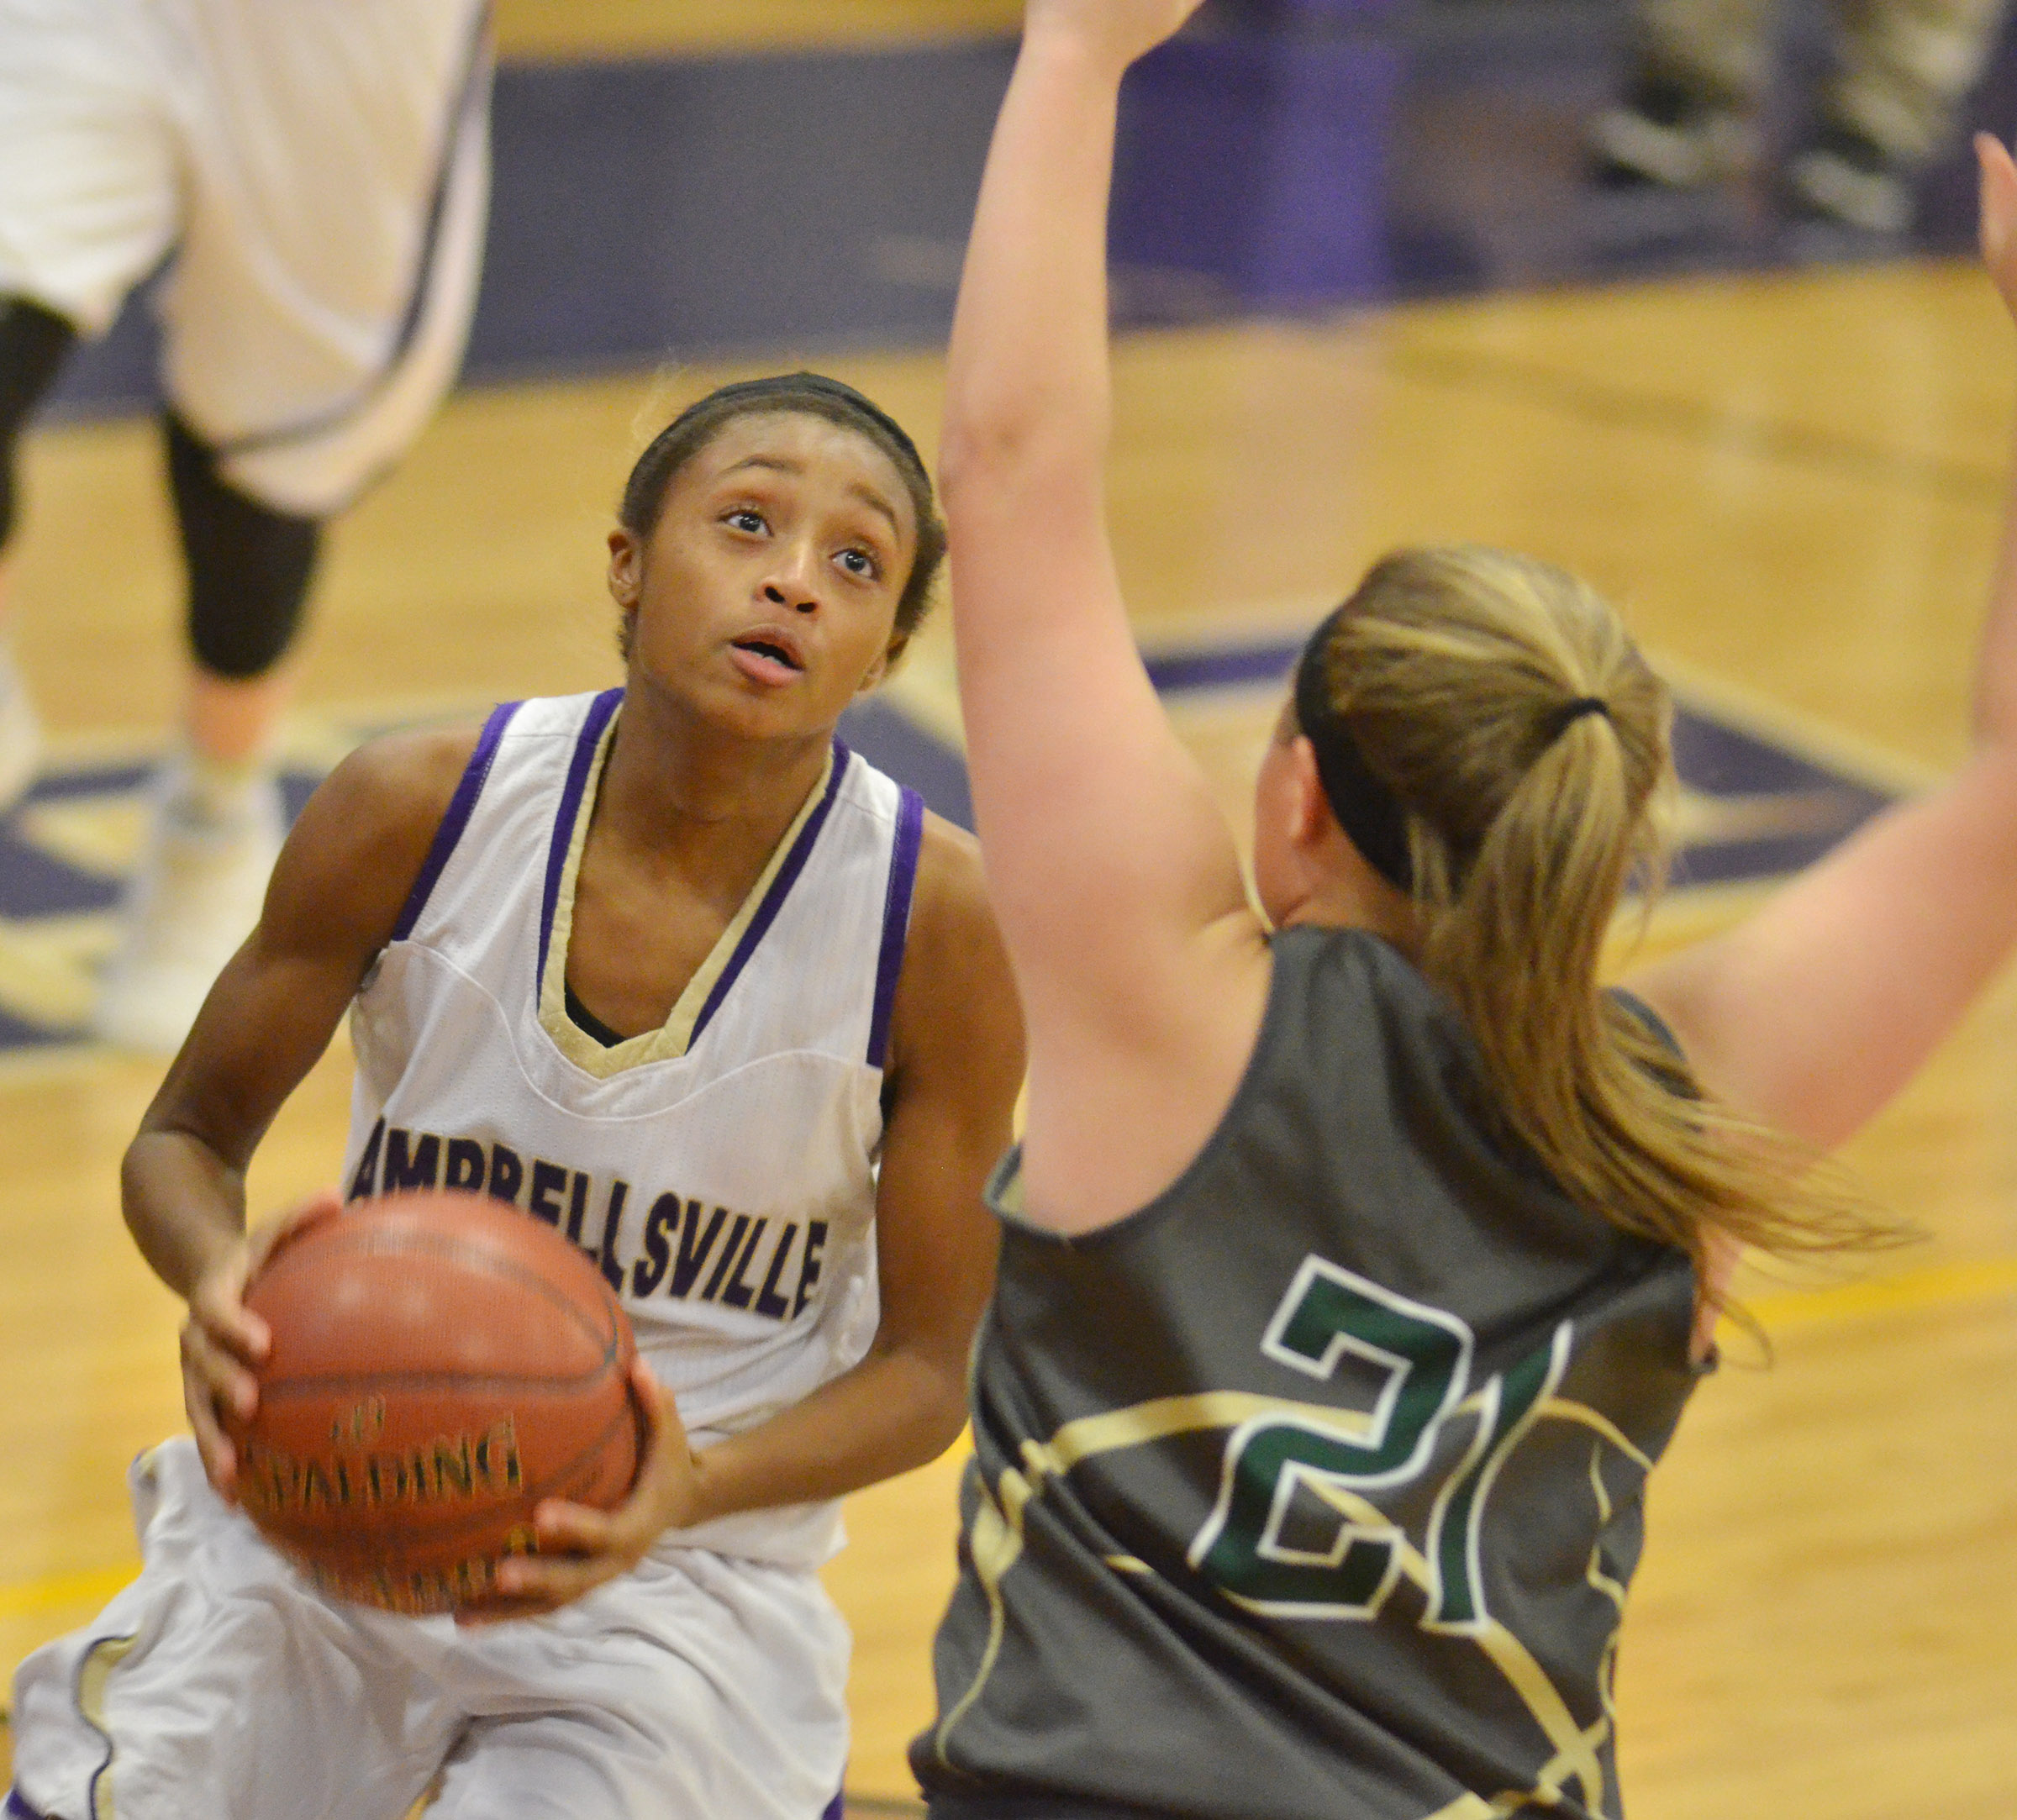 Campbellsville Middle School eighth-grader Bri Gowdy drives the ball.